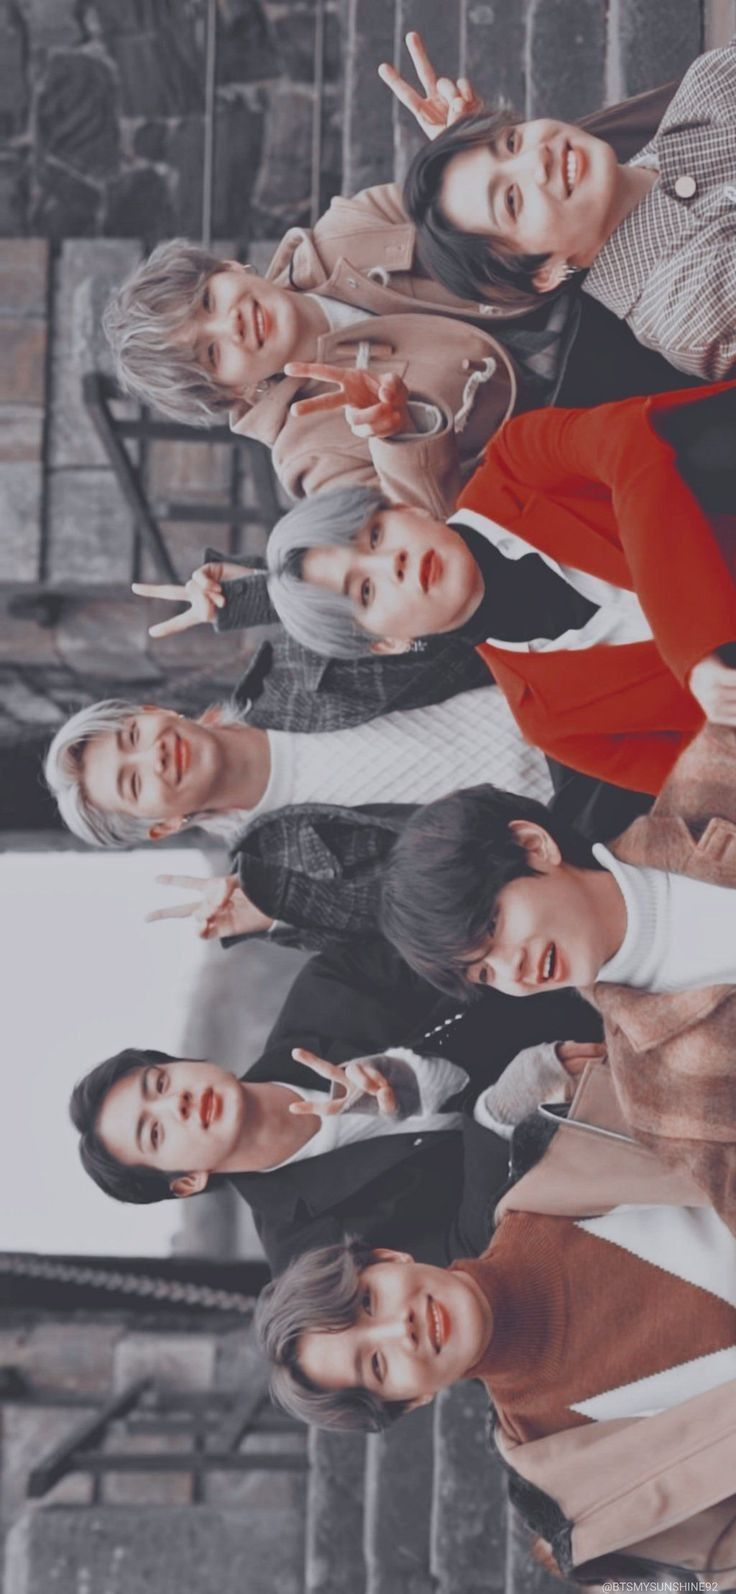 You Will Infiltrate The Most Infamous And Dangerous Prison In All Of Fanfiction Fanfiction Amreading Books Wattpad En 2020 Fond D Ecran Kpop Foto Bts Bts